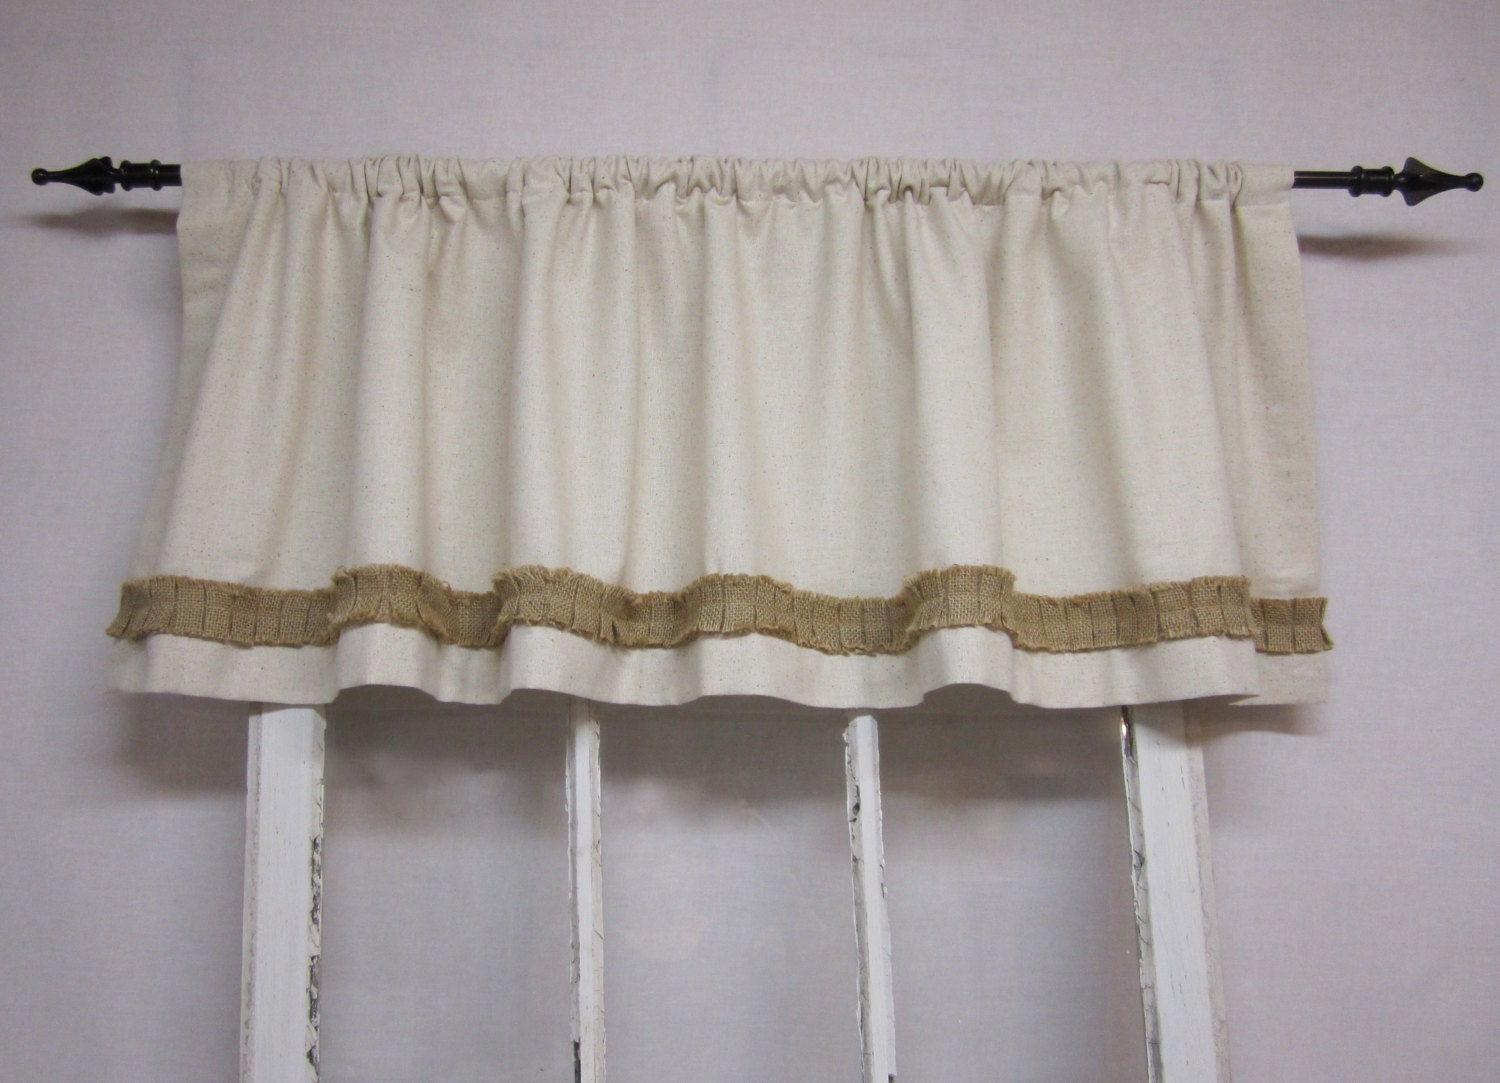 Burlap Valances For Windows : Burlap curtains valance window valence by runningwithribbons